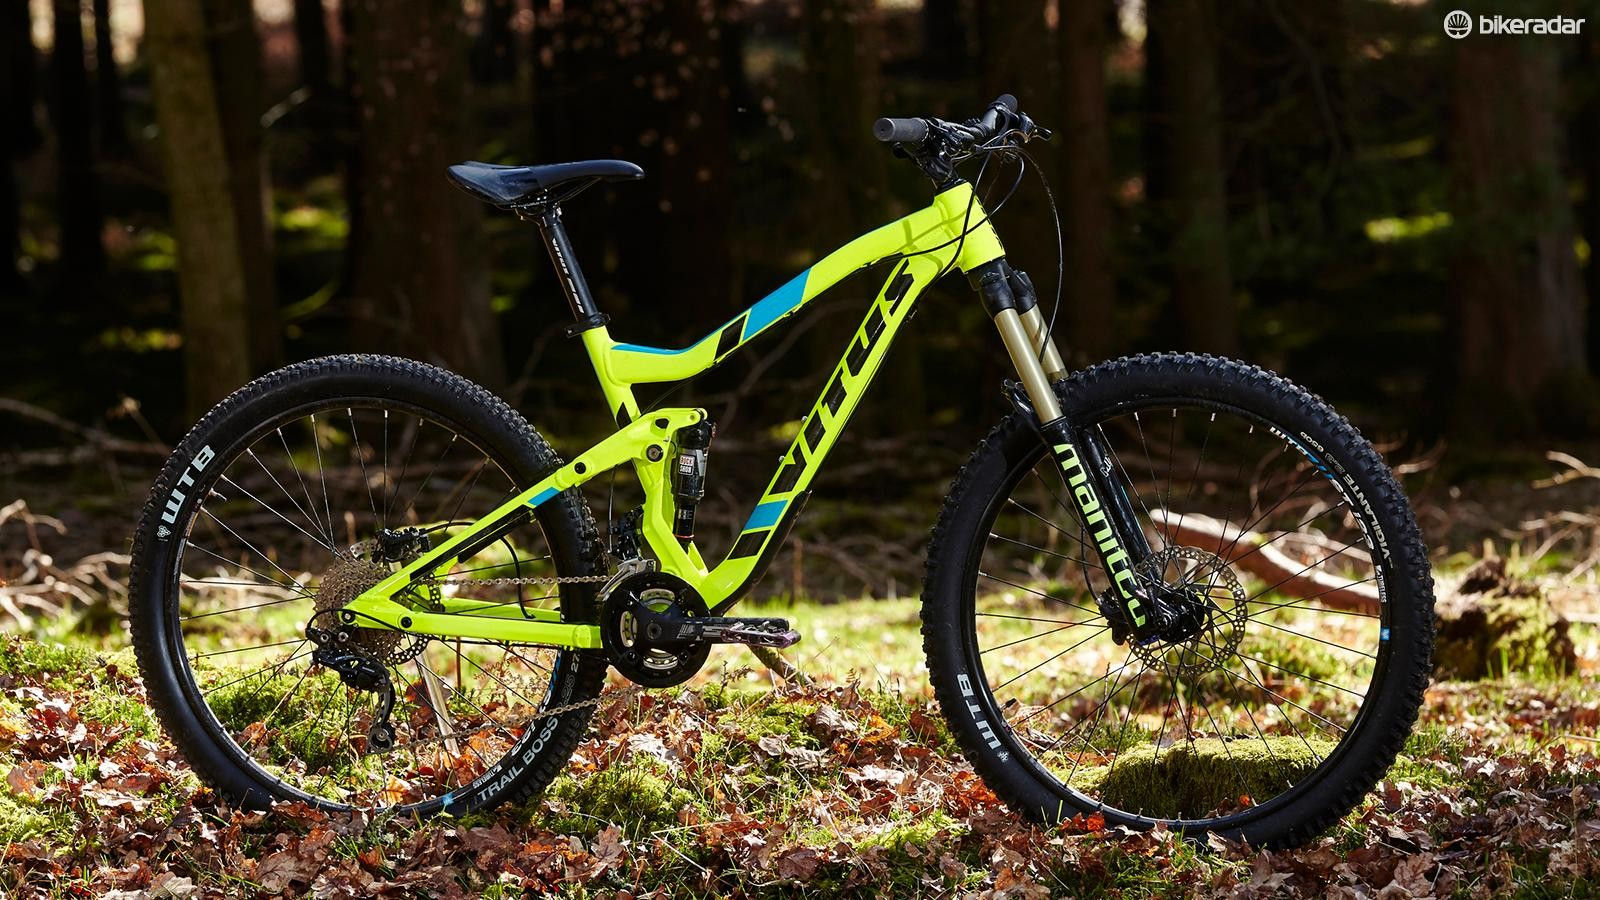 Beyond the Vitus Escarpe's fluoro paint job lies an impressively thought out ride